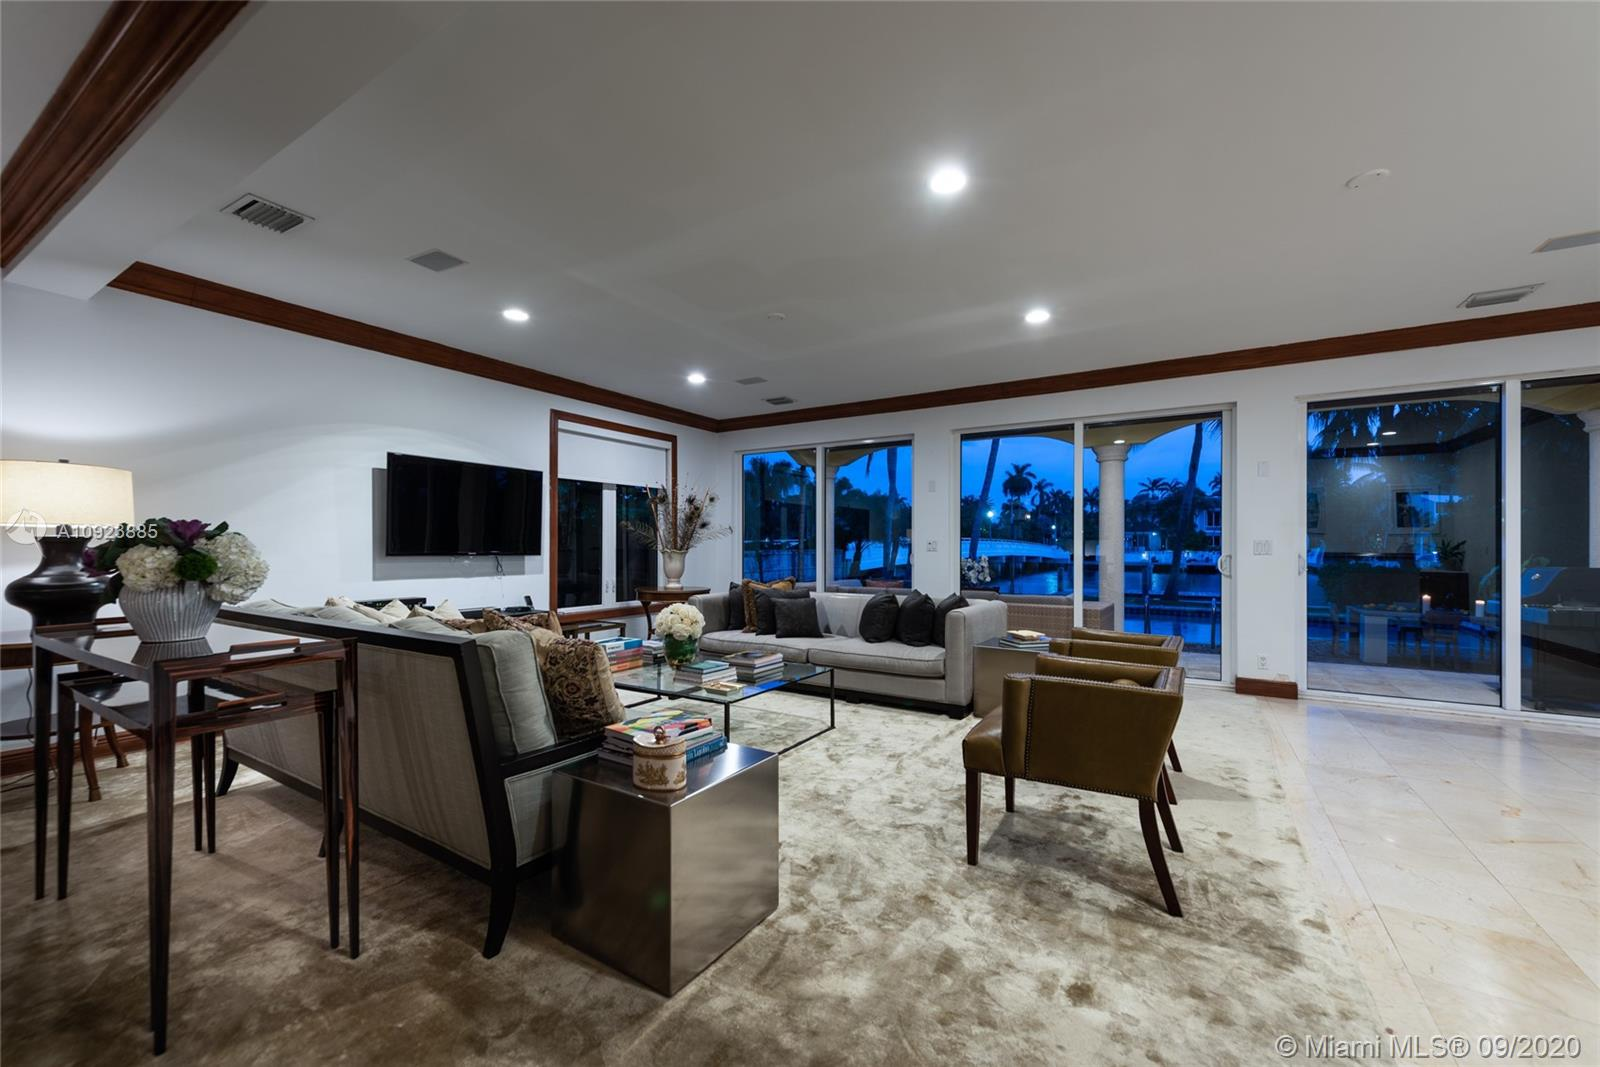 6 Bedrooms, 5 Full Baths with 4,161 SqFt Living Area